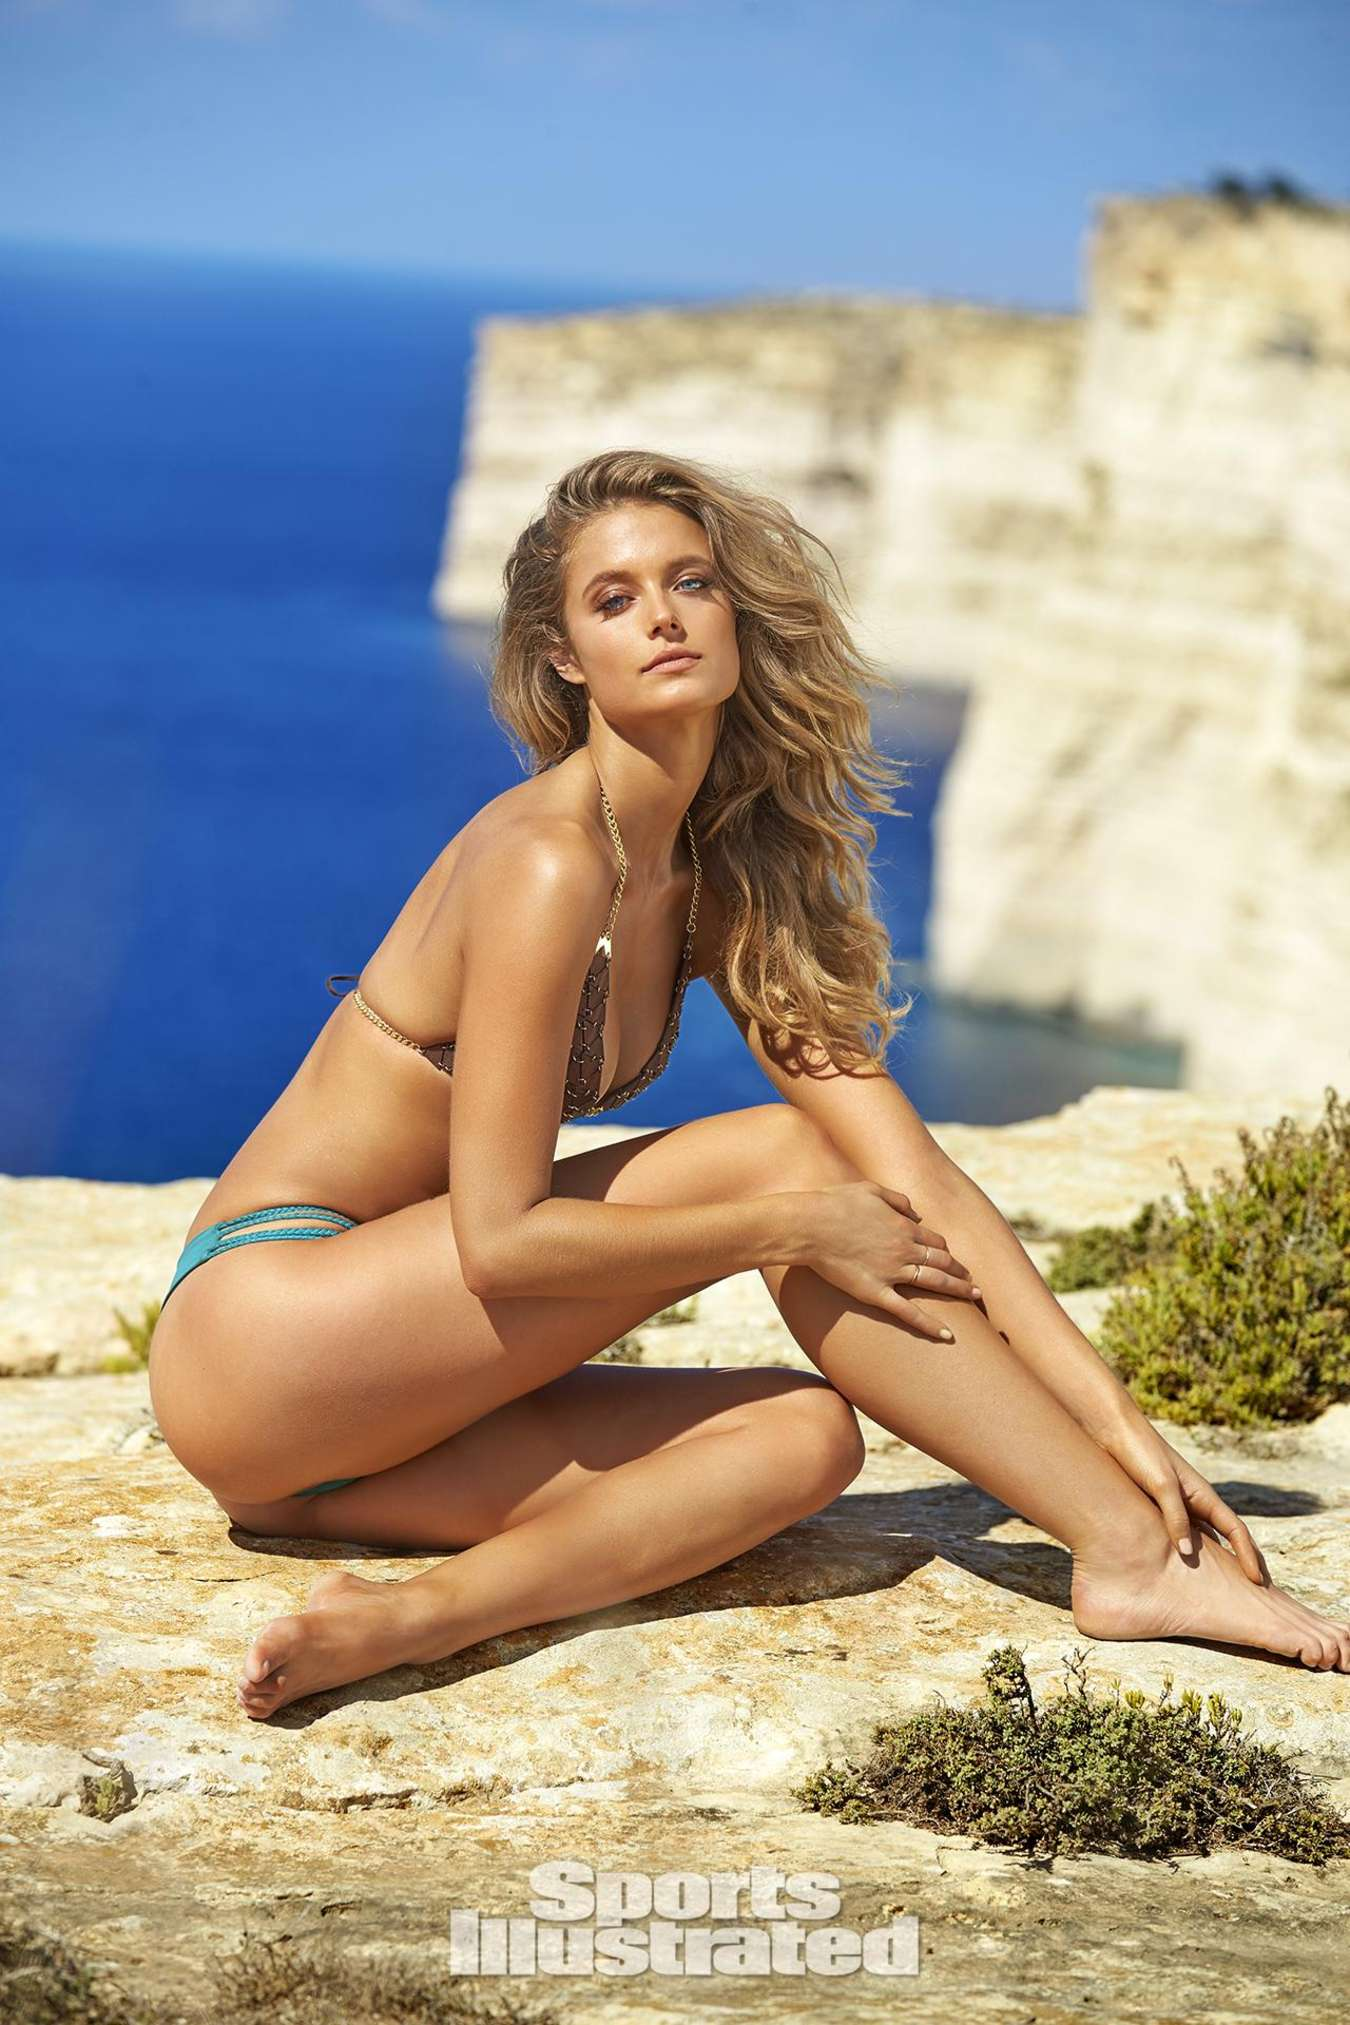 Kate Bock Sports Illustrated Swimsuit Edition